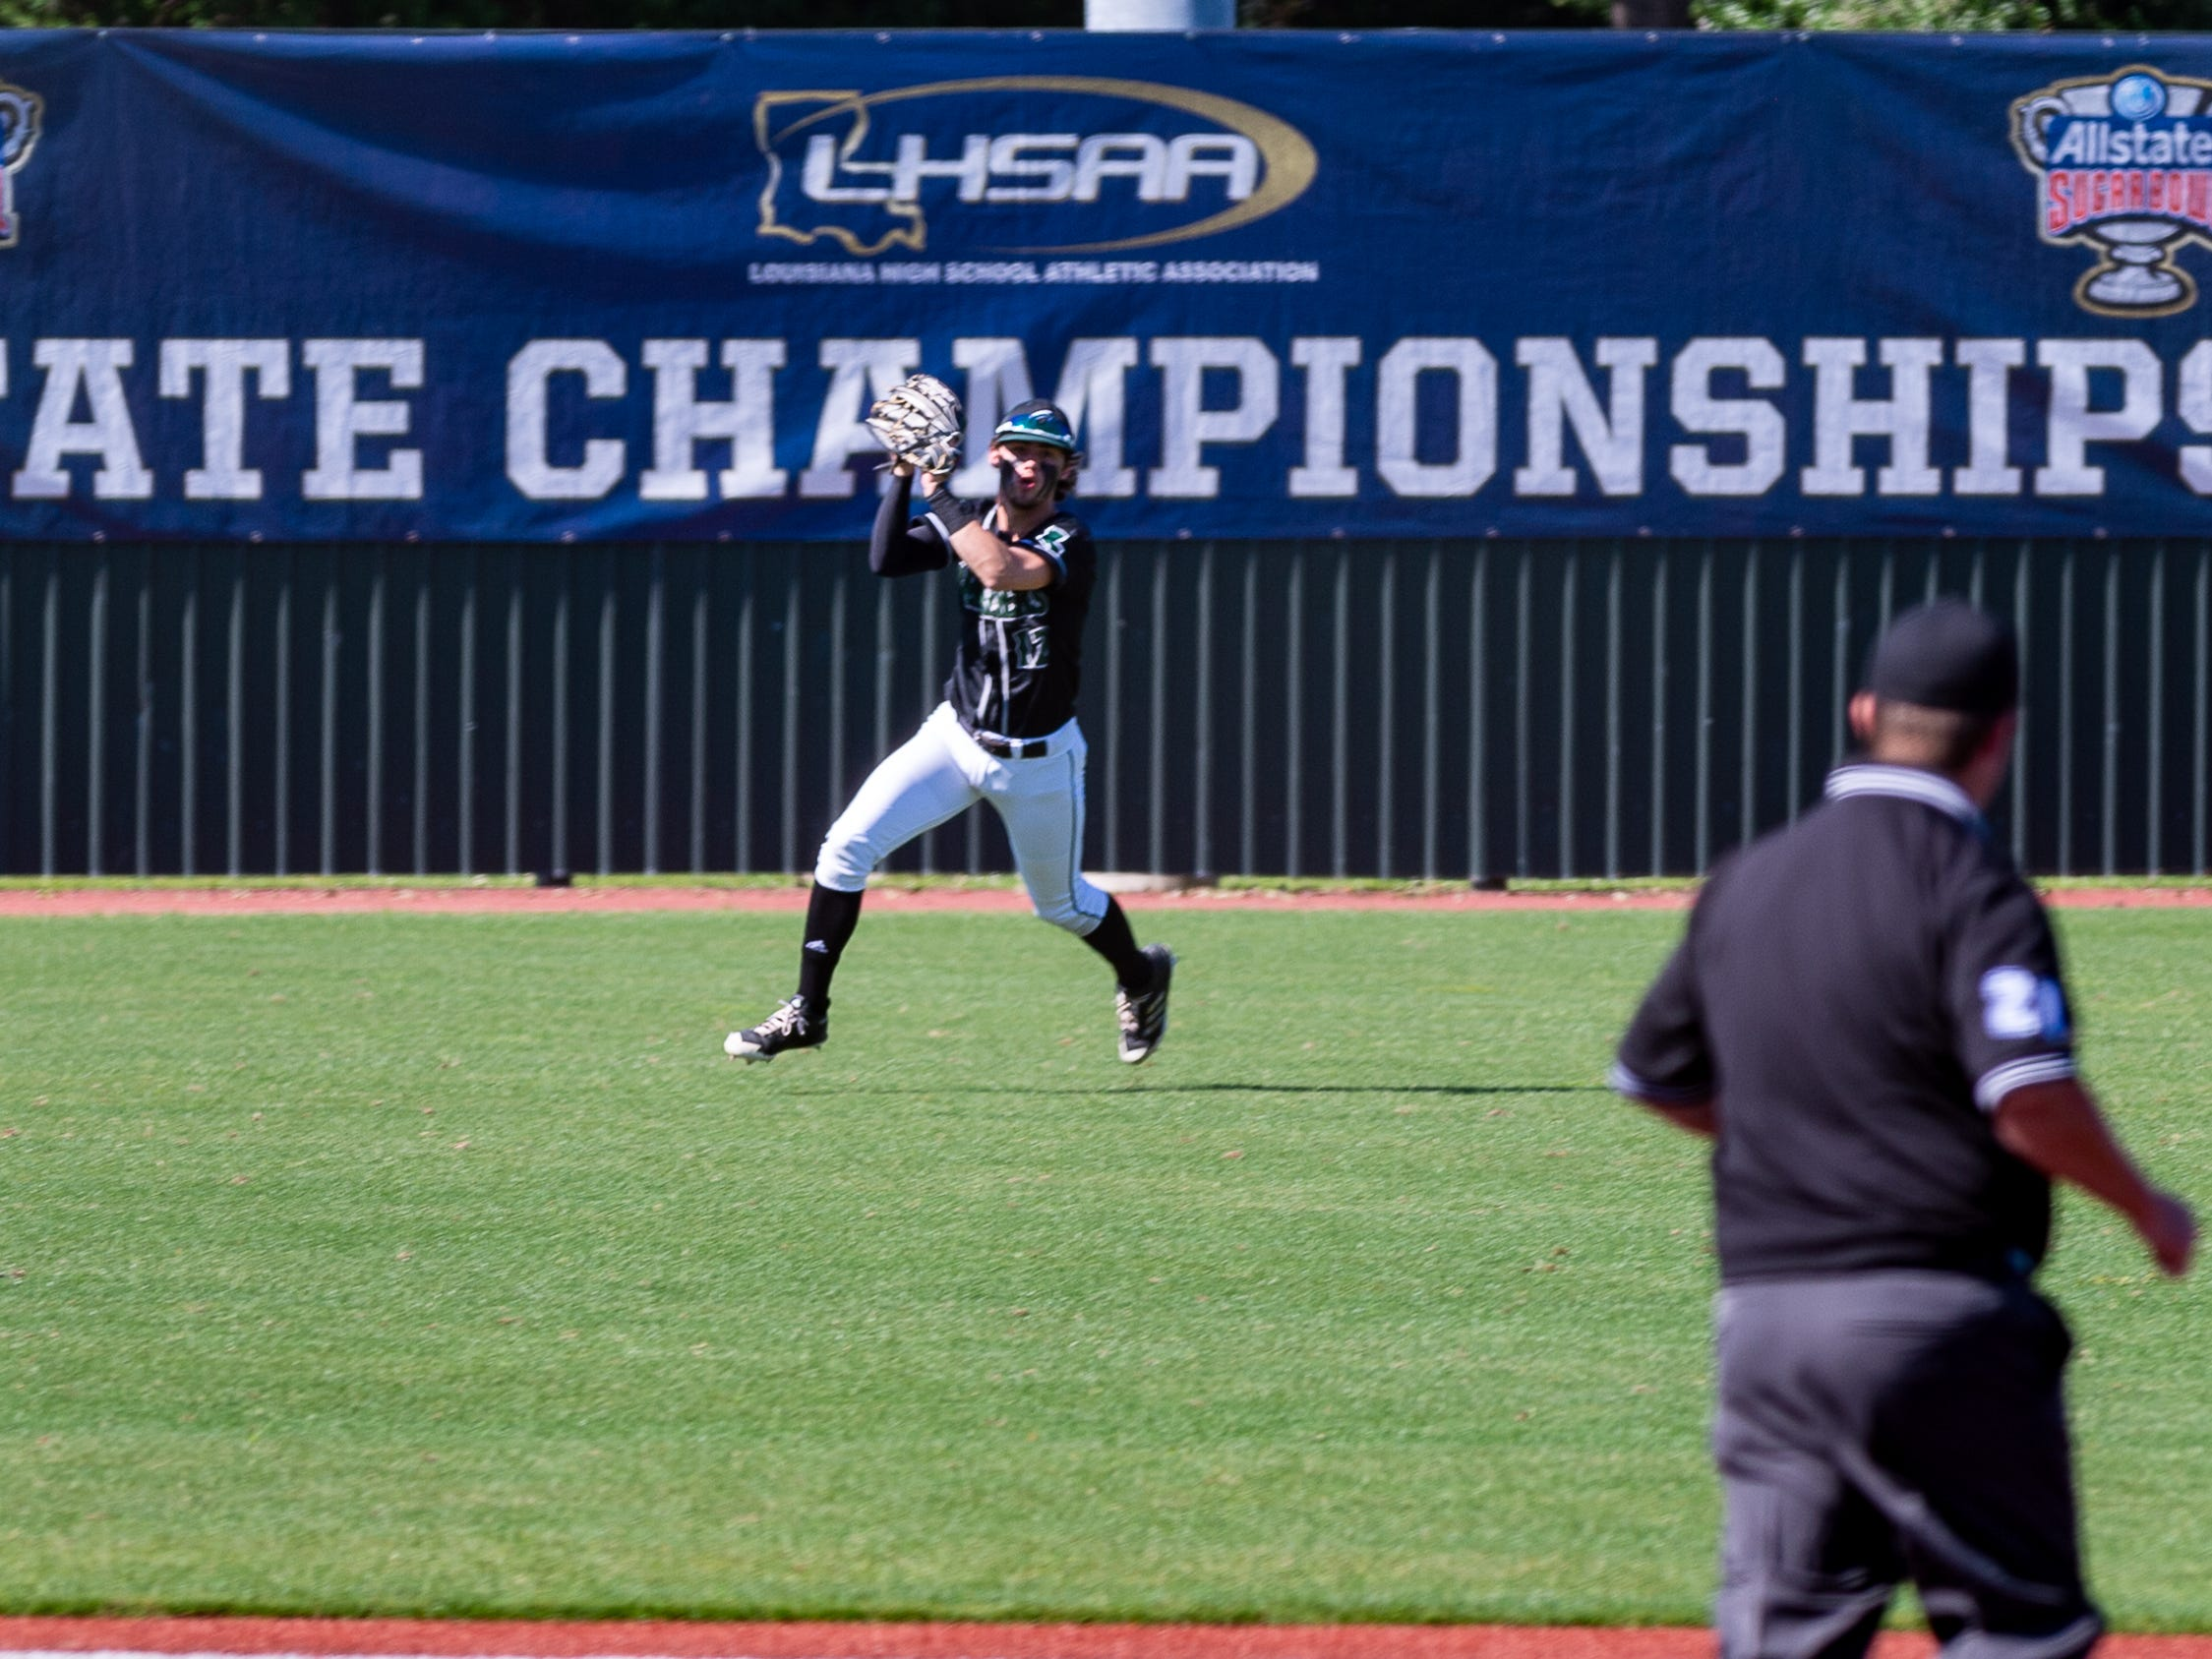 Michael Johnson hauls in a fly ball as Cade Hart on the mound as Calvary Baptist takes down Ascension Episcopalto win State Championship game at the LHSAA State Tournament. Monday, May 13, 2019.